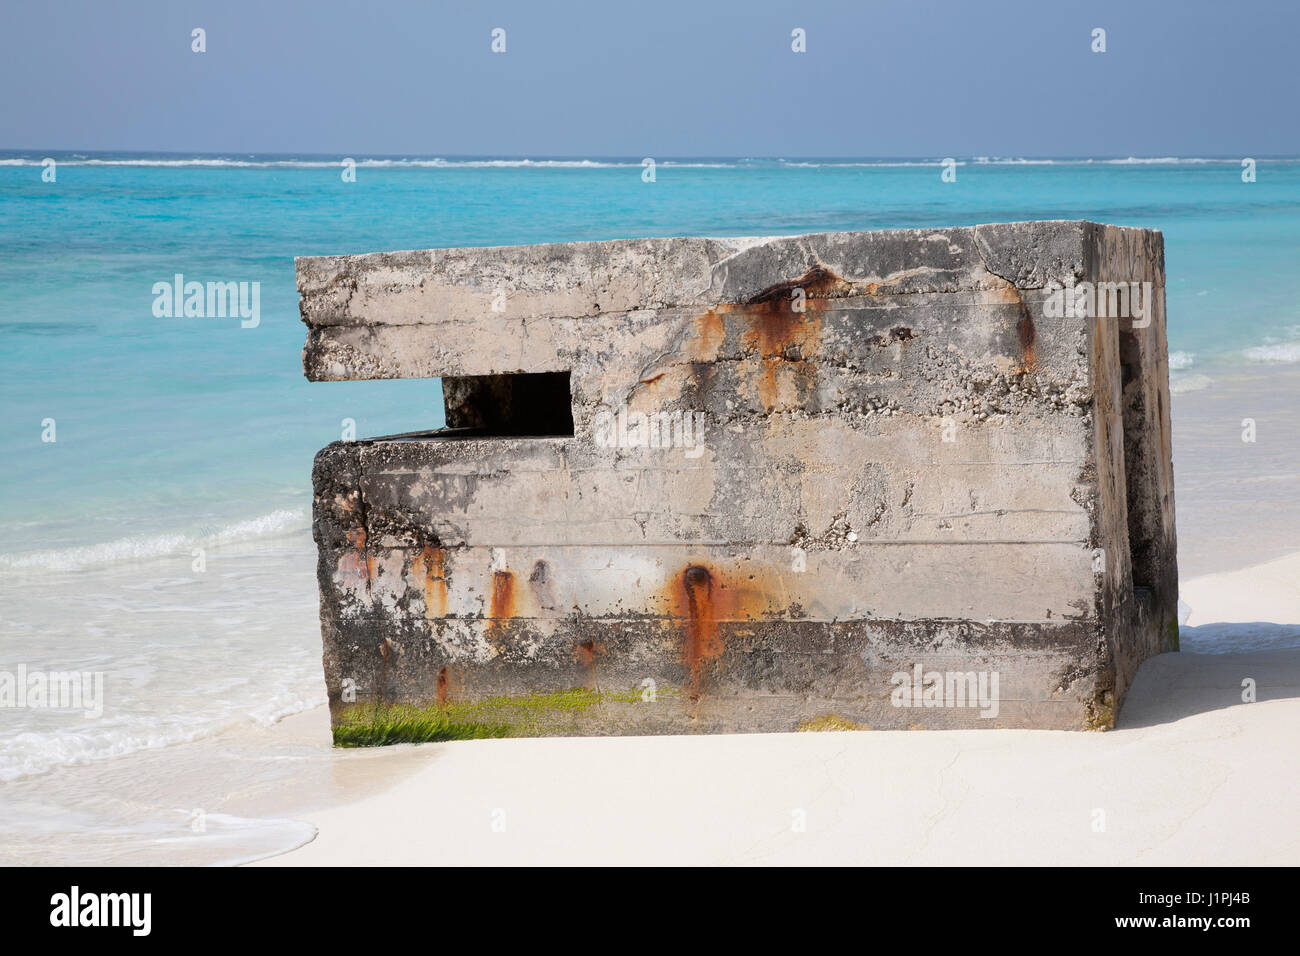 Pillbox used as a military lookout during World War II on the beach of Midway Atoll, part of the Battle of Midway - Stock Image